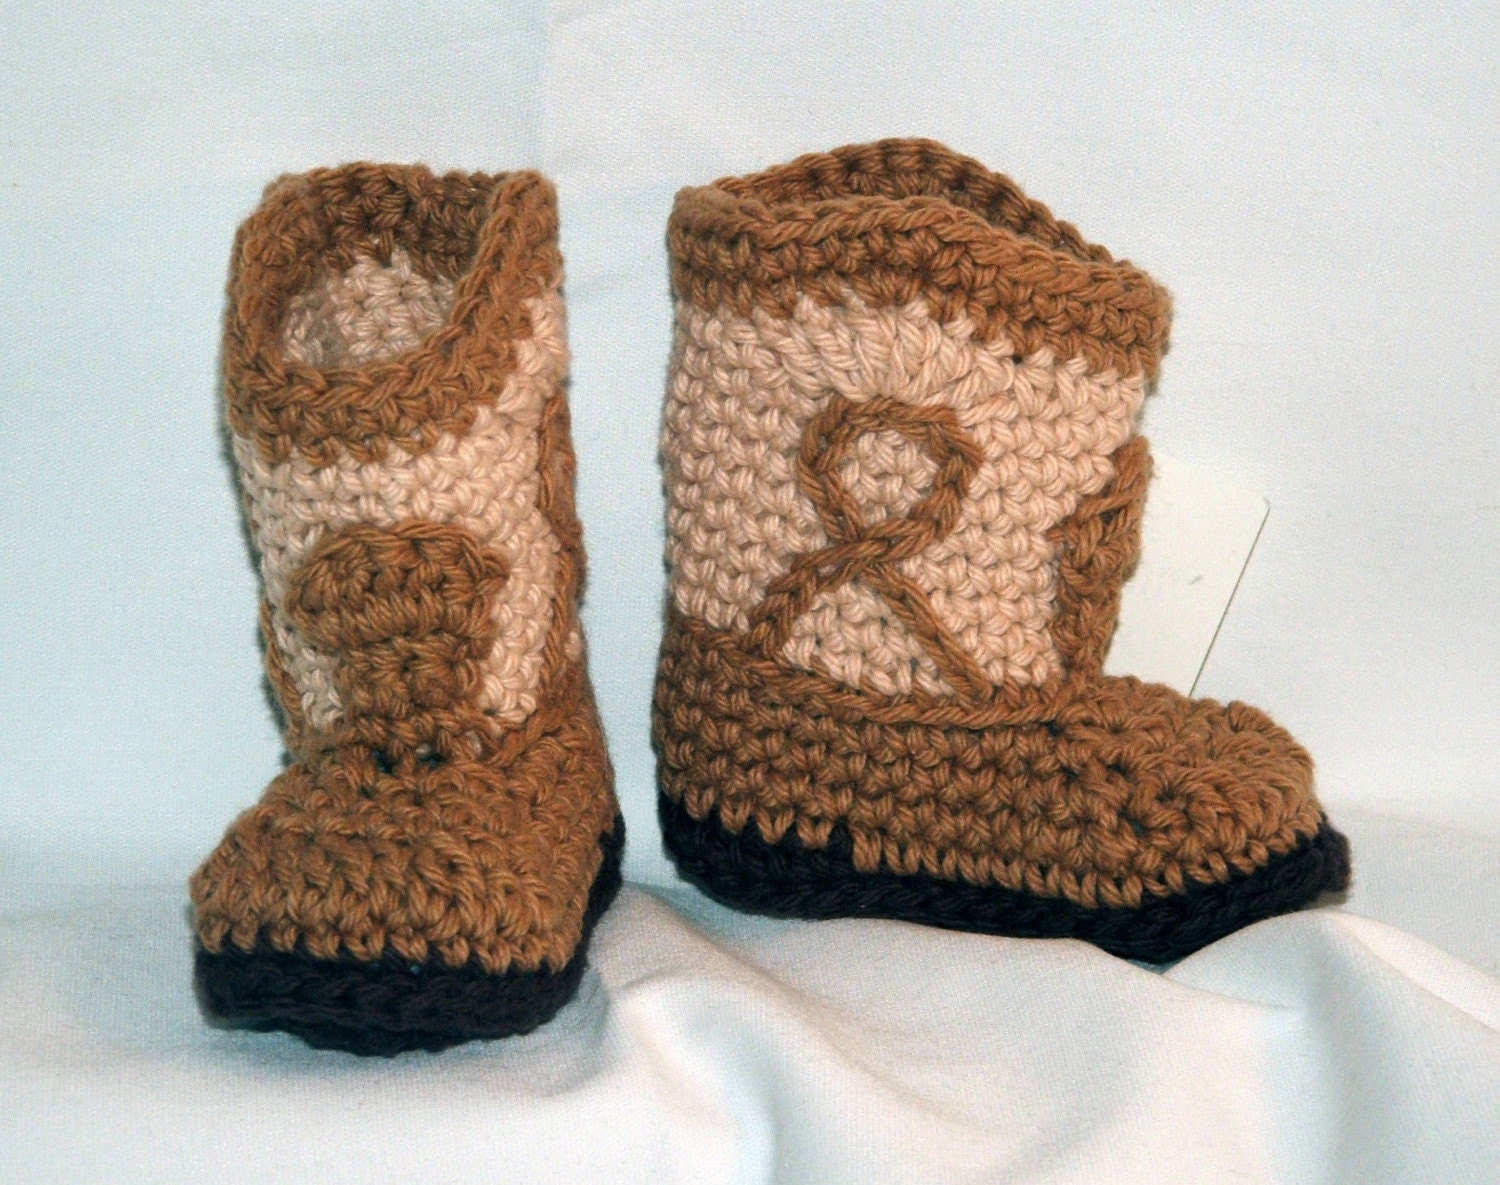 Tan Cowboy Booties, MEDIUM size, that look like real cowboy boots